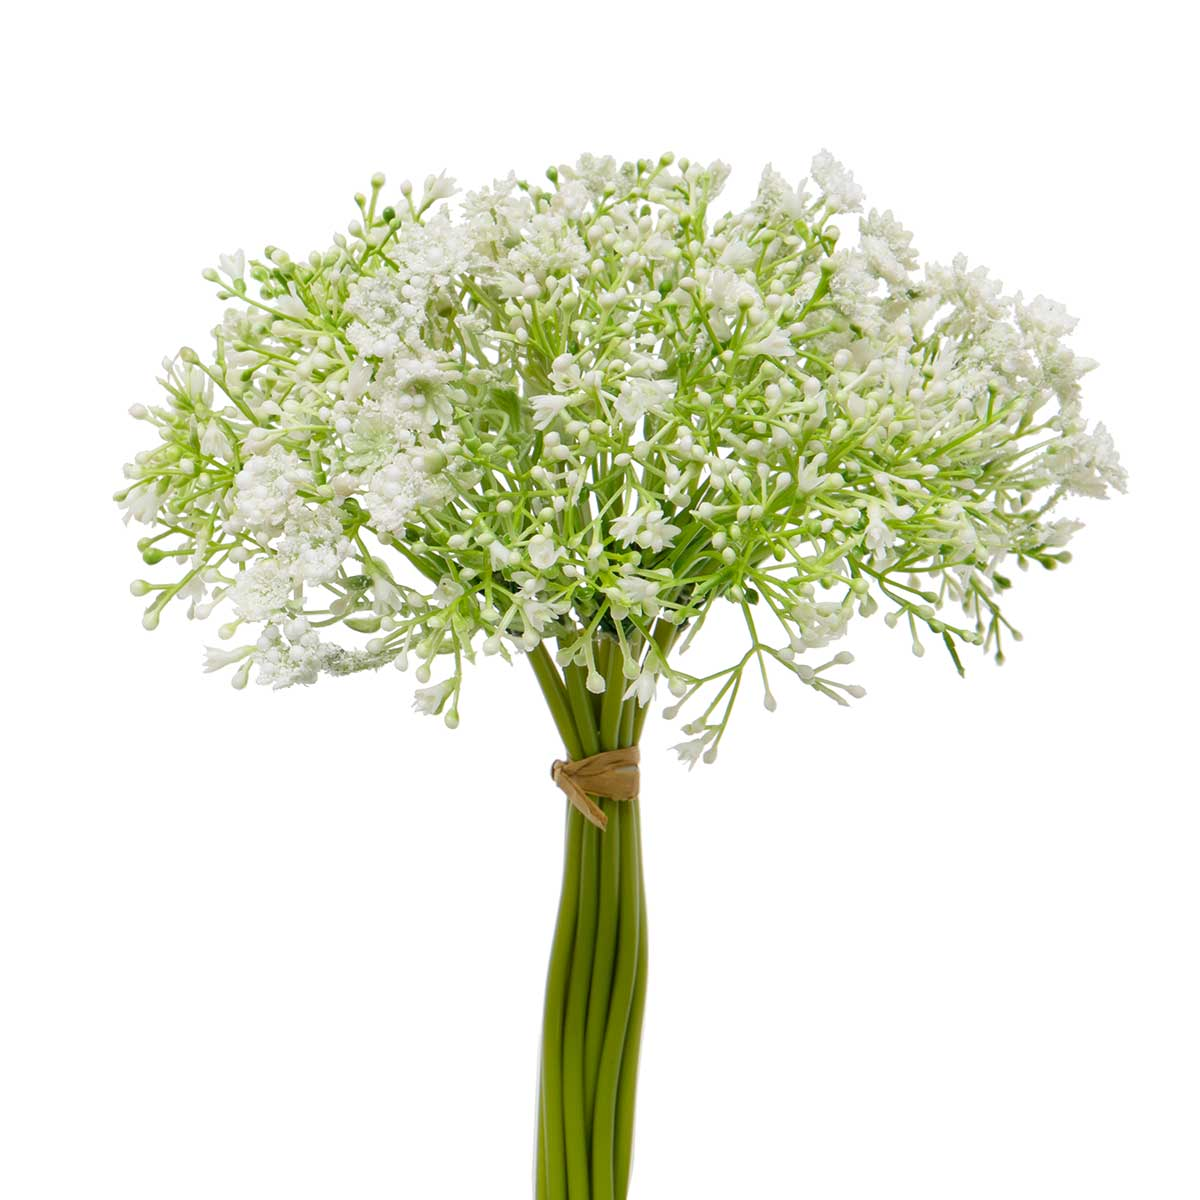 FRESH BABY'S BREATH BUNDLE OF 12